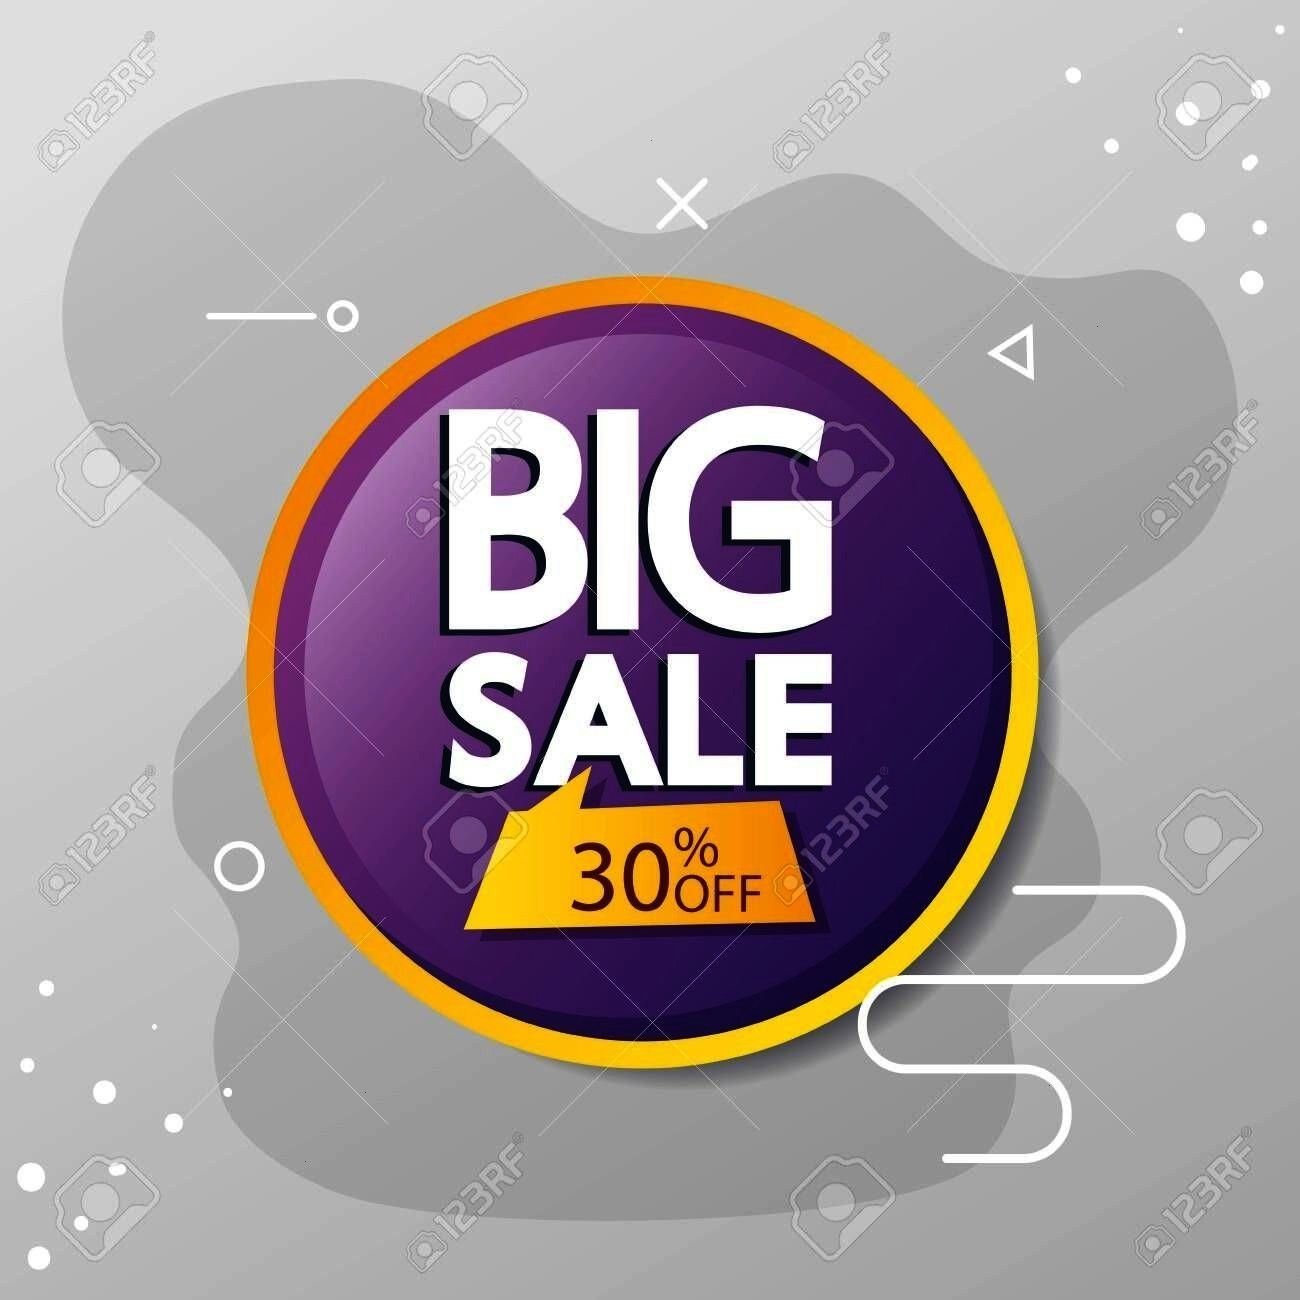 discount vector with big sale offer lettering and thirty percent discount vector illustration design Illustration commercial label with big sale offer lettering and thirt...